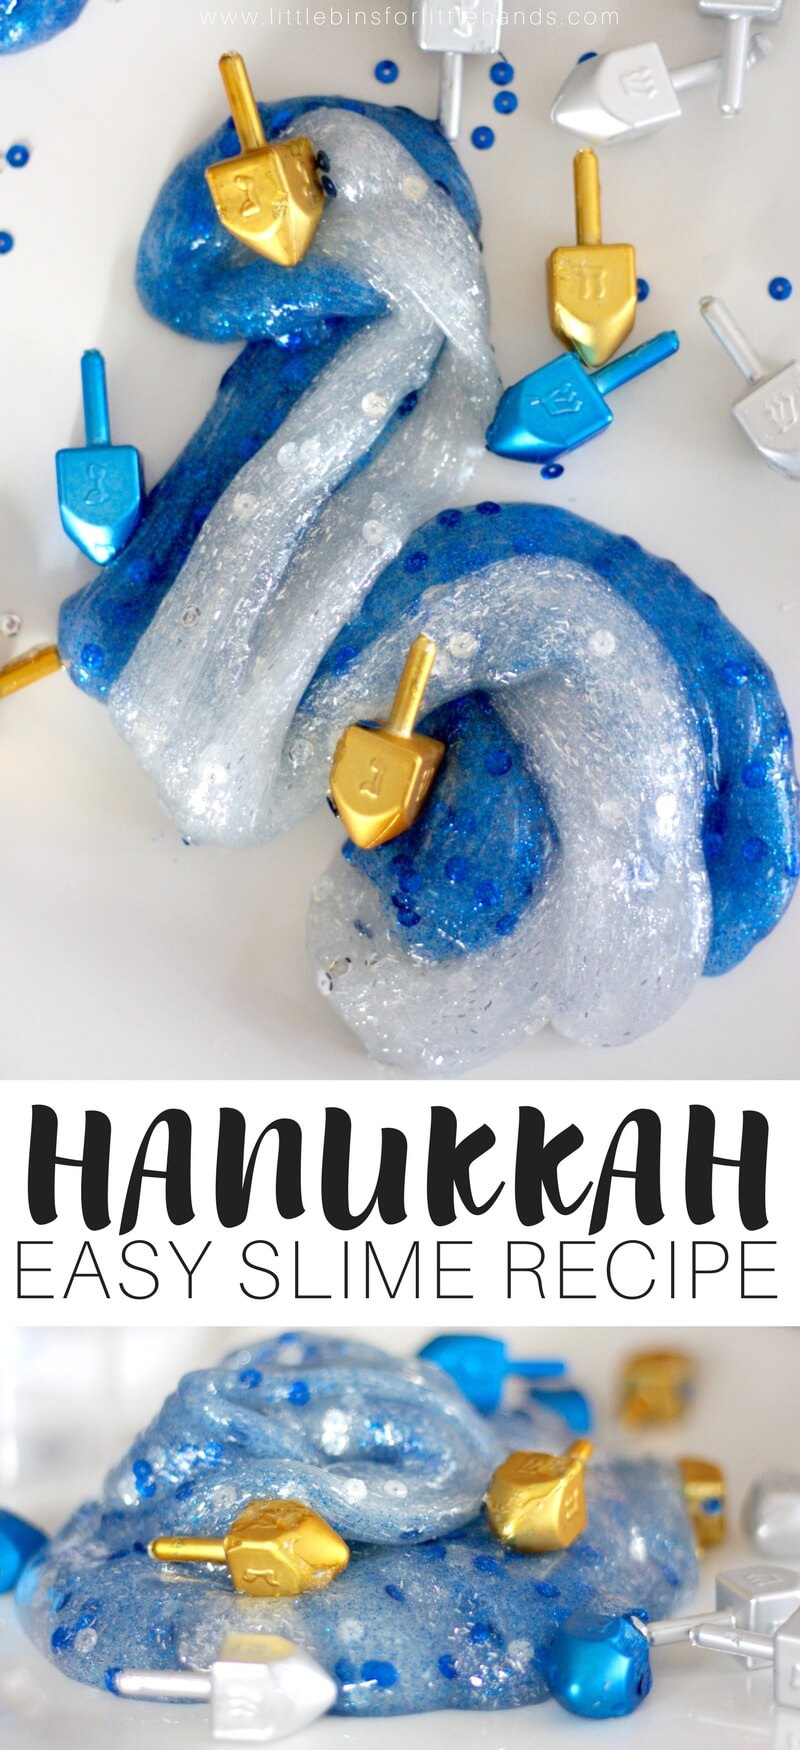 Easy To Make Hanukkah Slime Recipe for Kids Winter Holiday